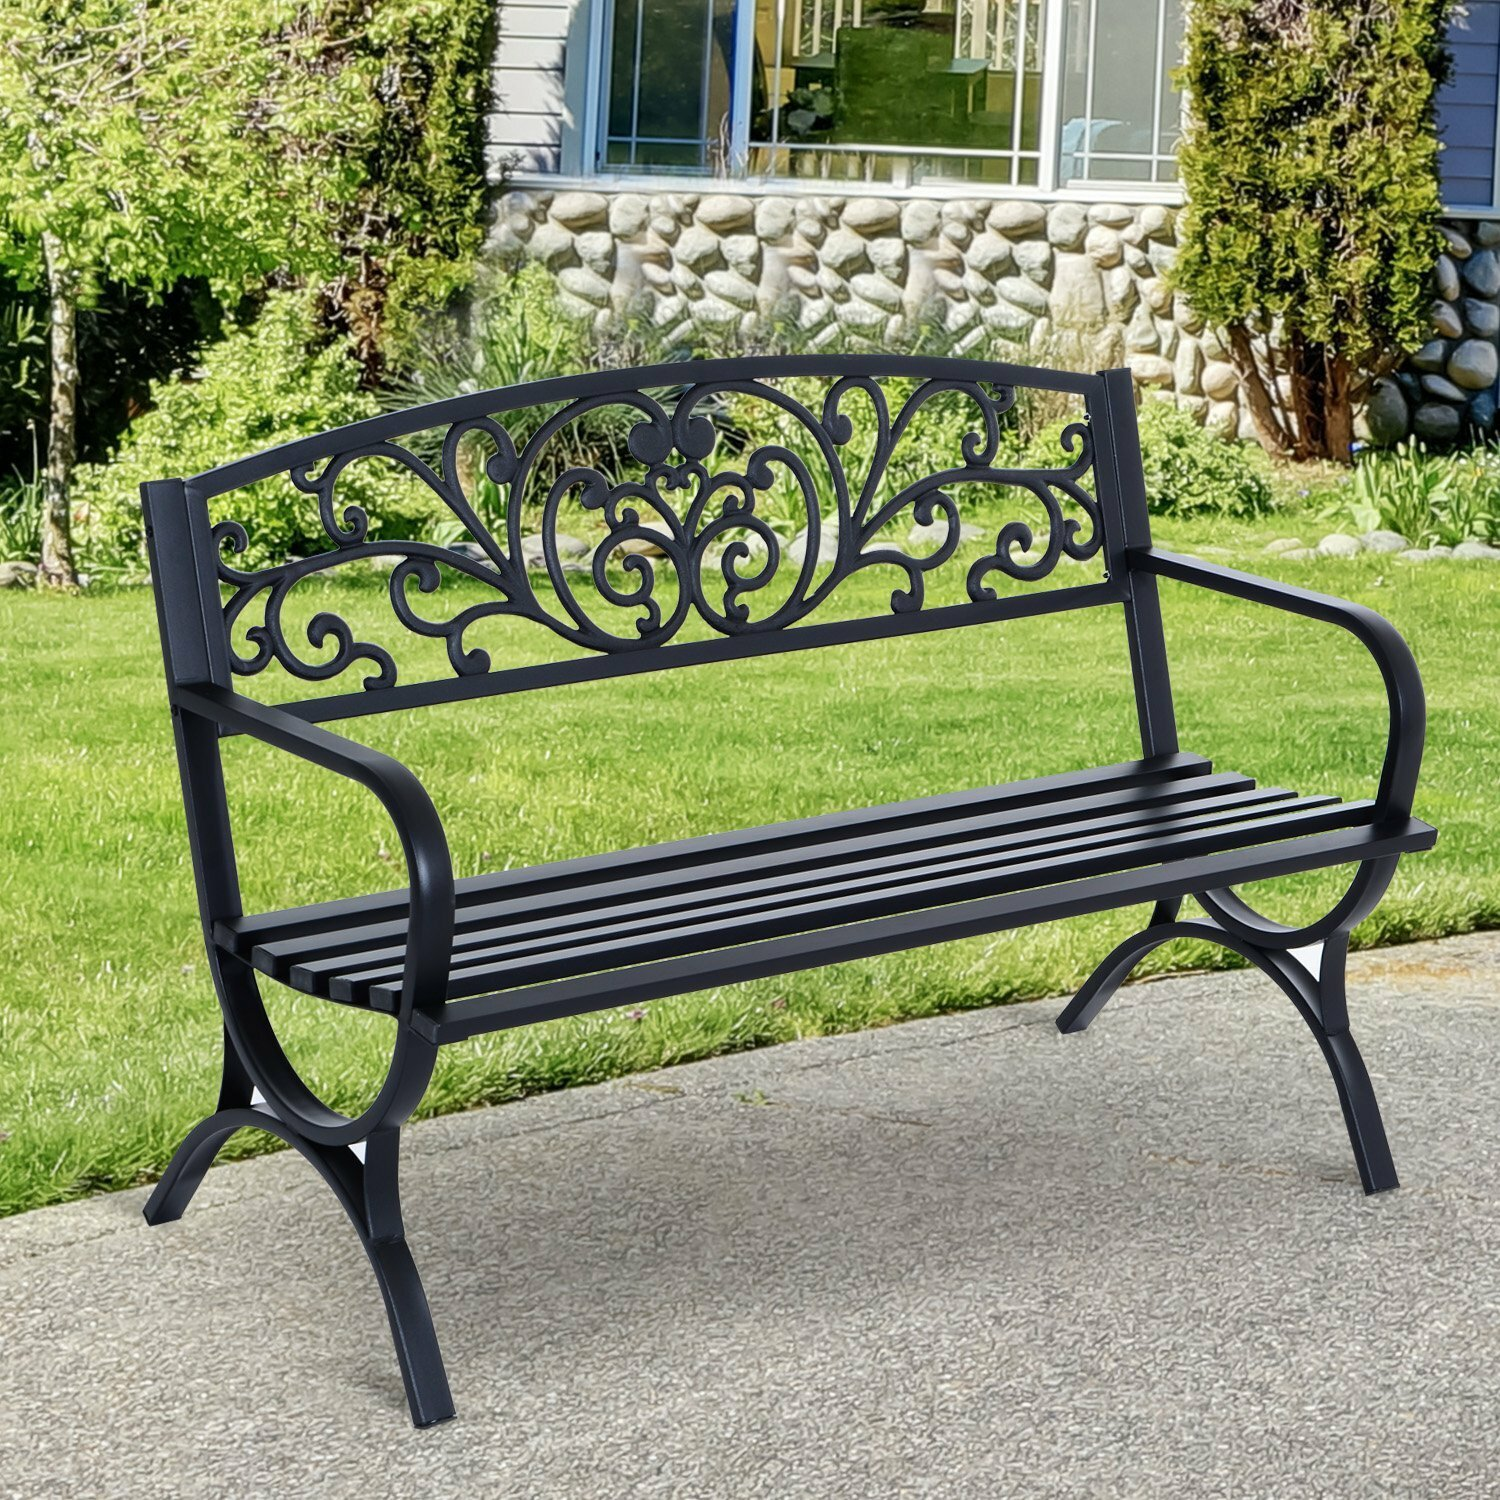 architectural steel asf entry bench seat and street furnishings pf stainless timber